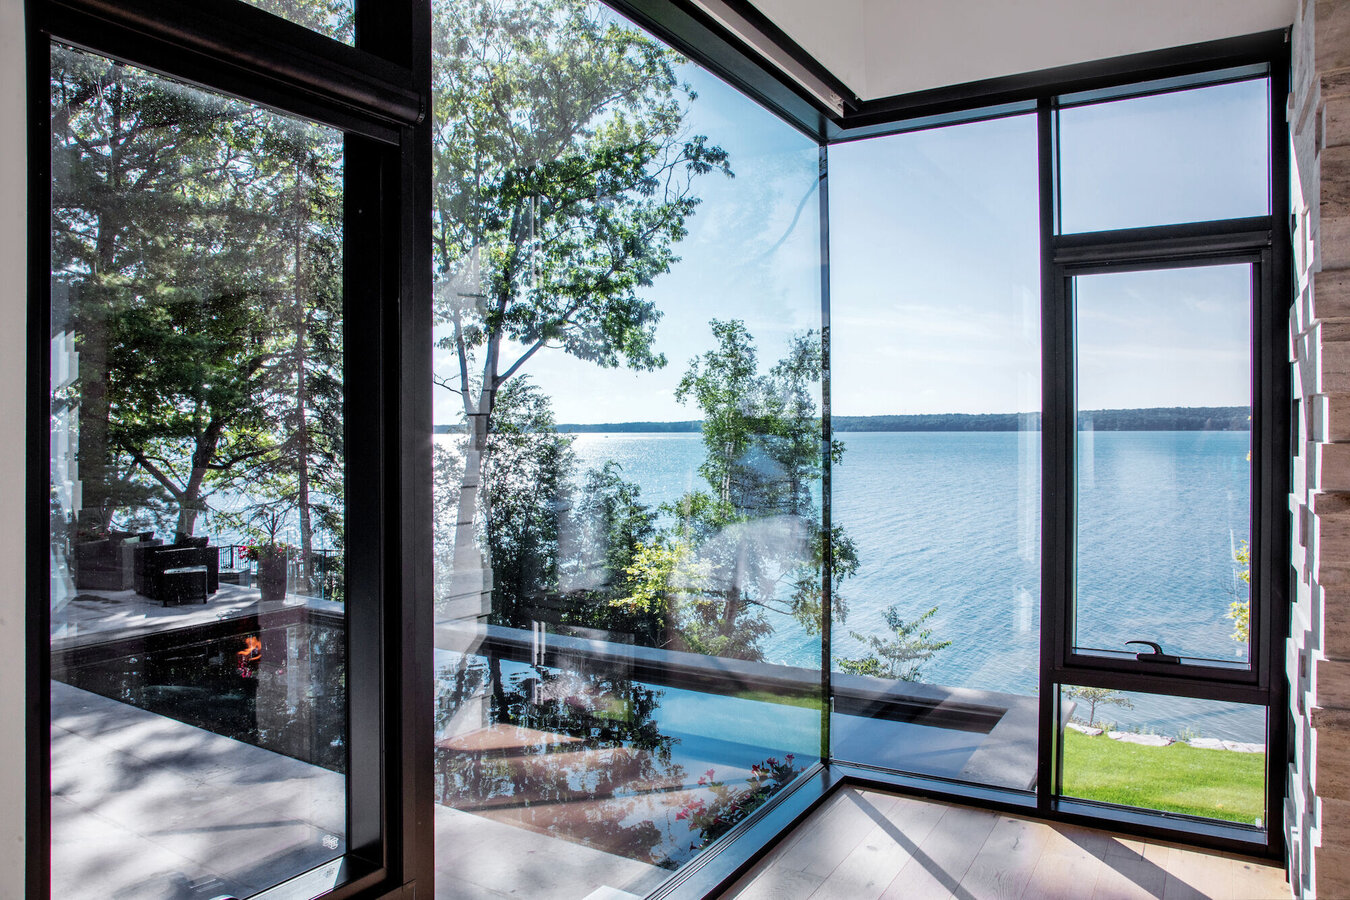 CW 50 Curtain Walls, CF 77 Sliding Systems, CS 77 Windows and CS 77 Doors - House South Water Flats located in Kempenfelt Bay, Canada